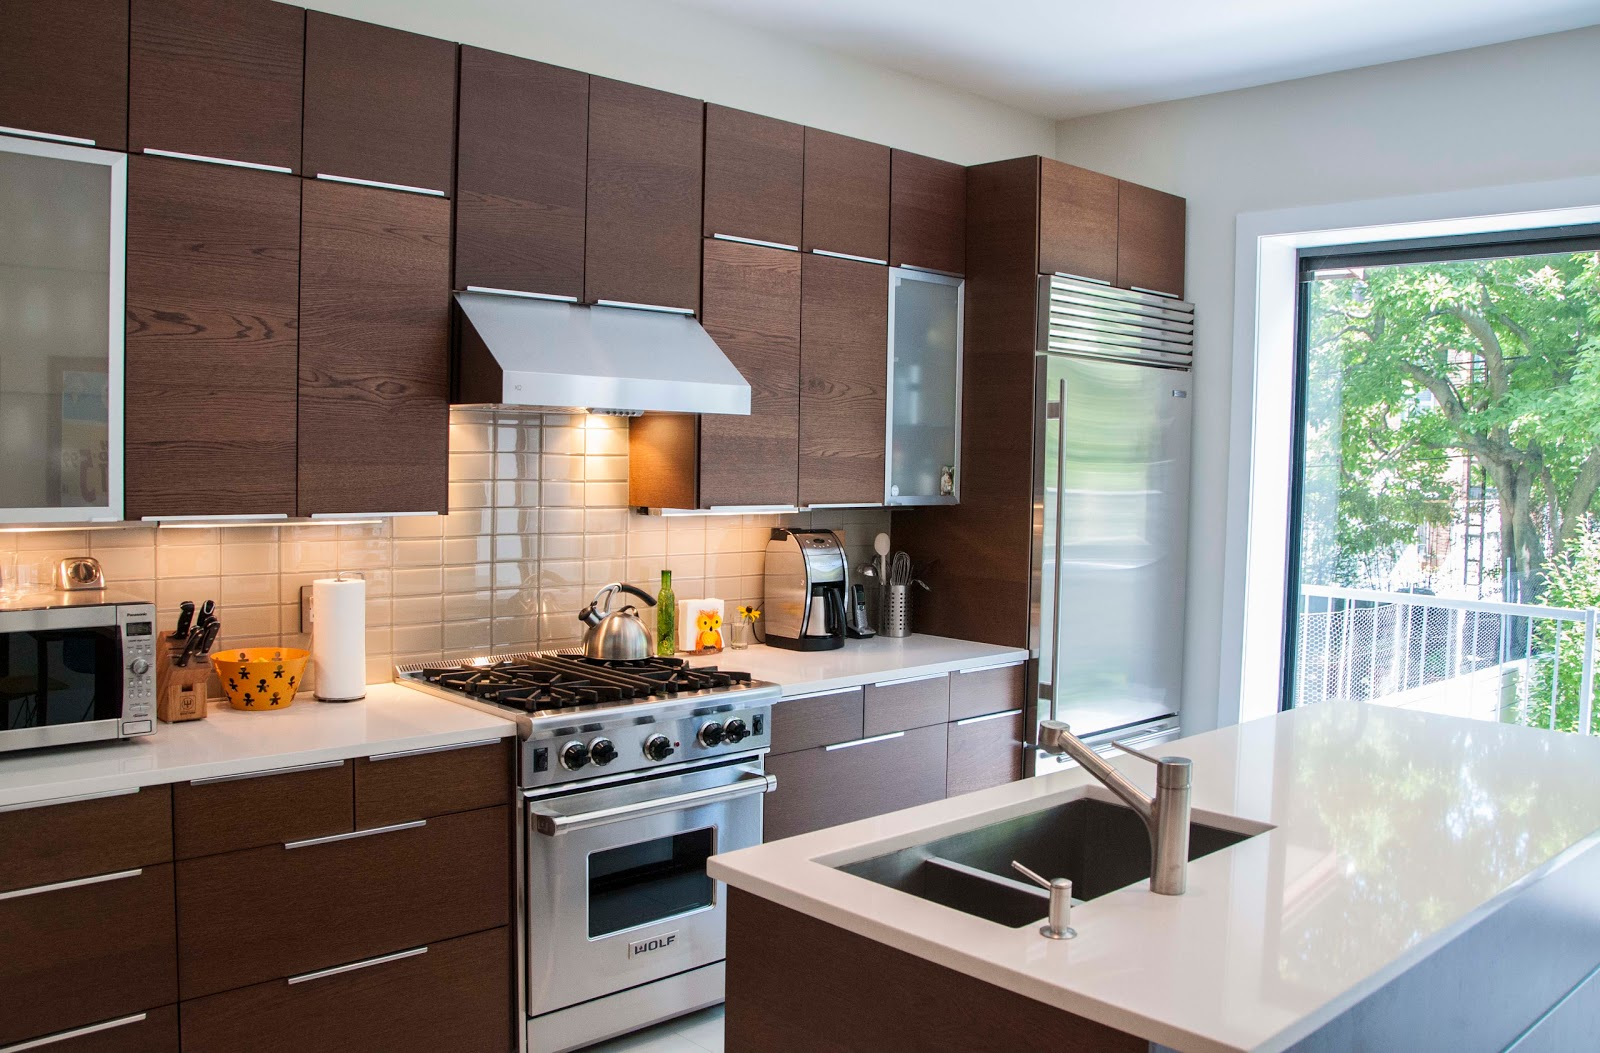 Bk to the fullest projects windsor terrace renovation for Kitchen cabinets ikea